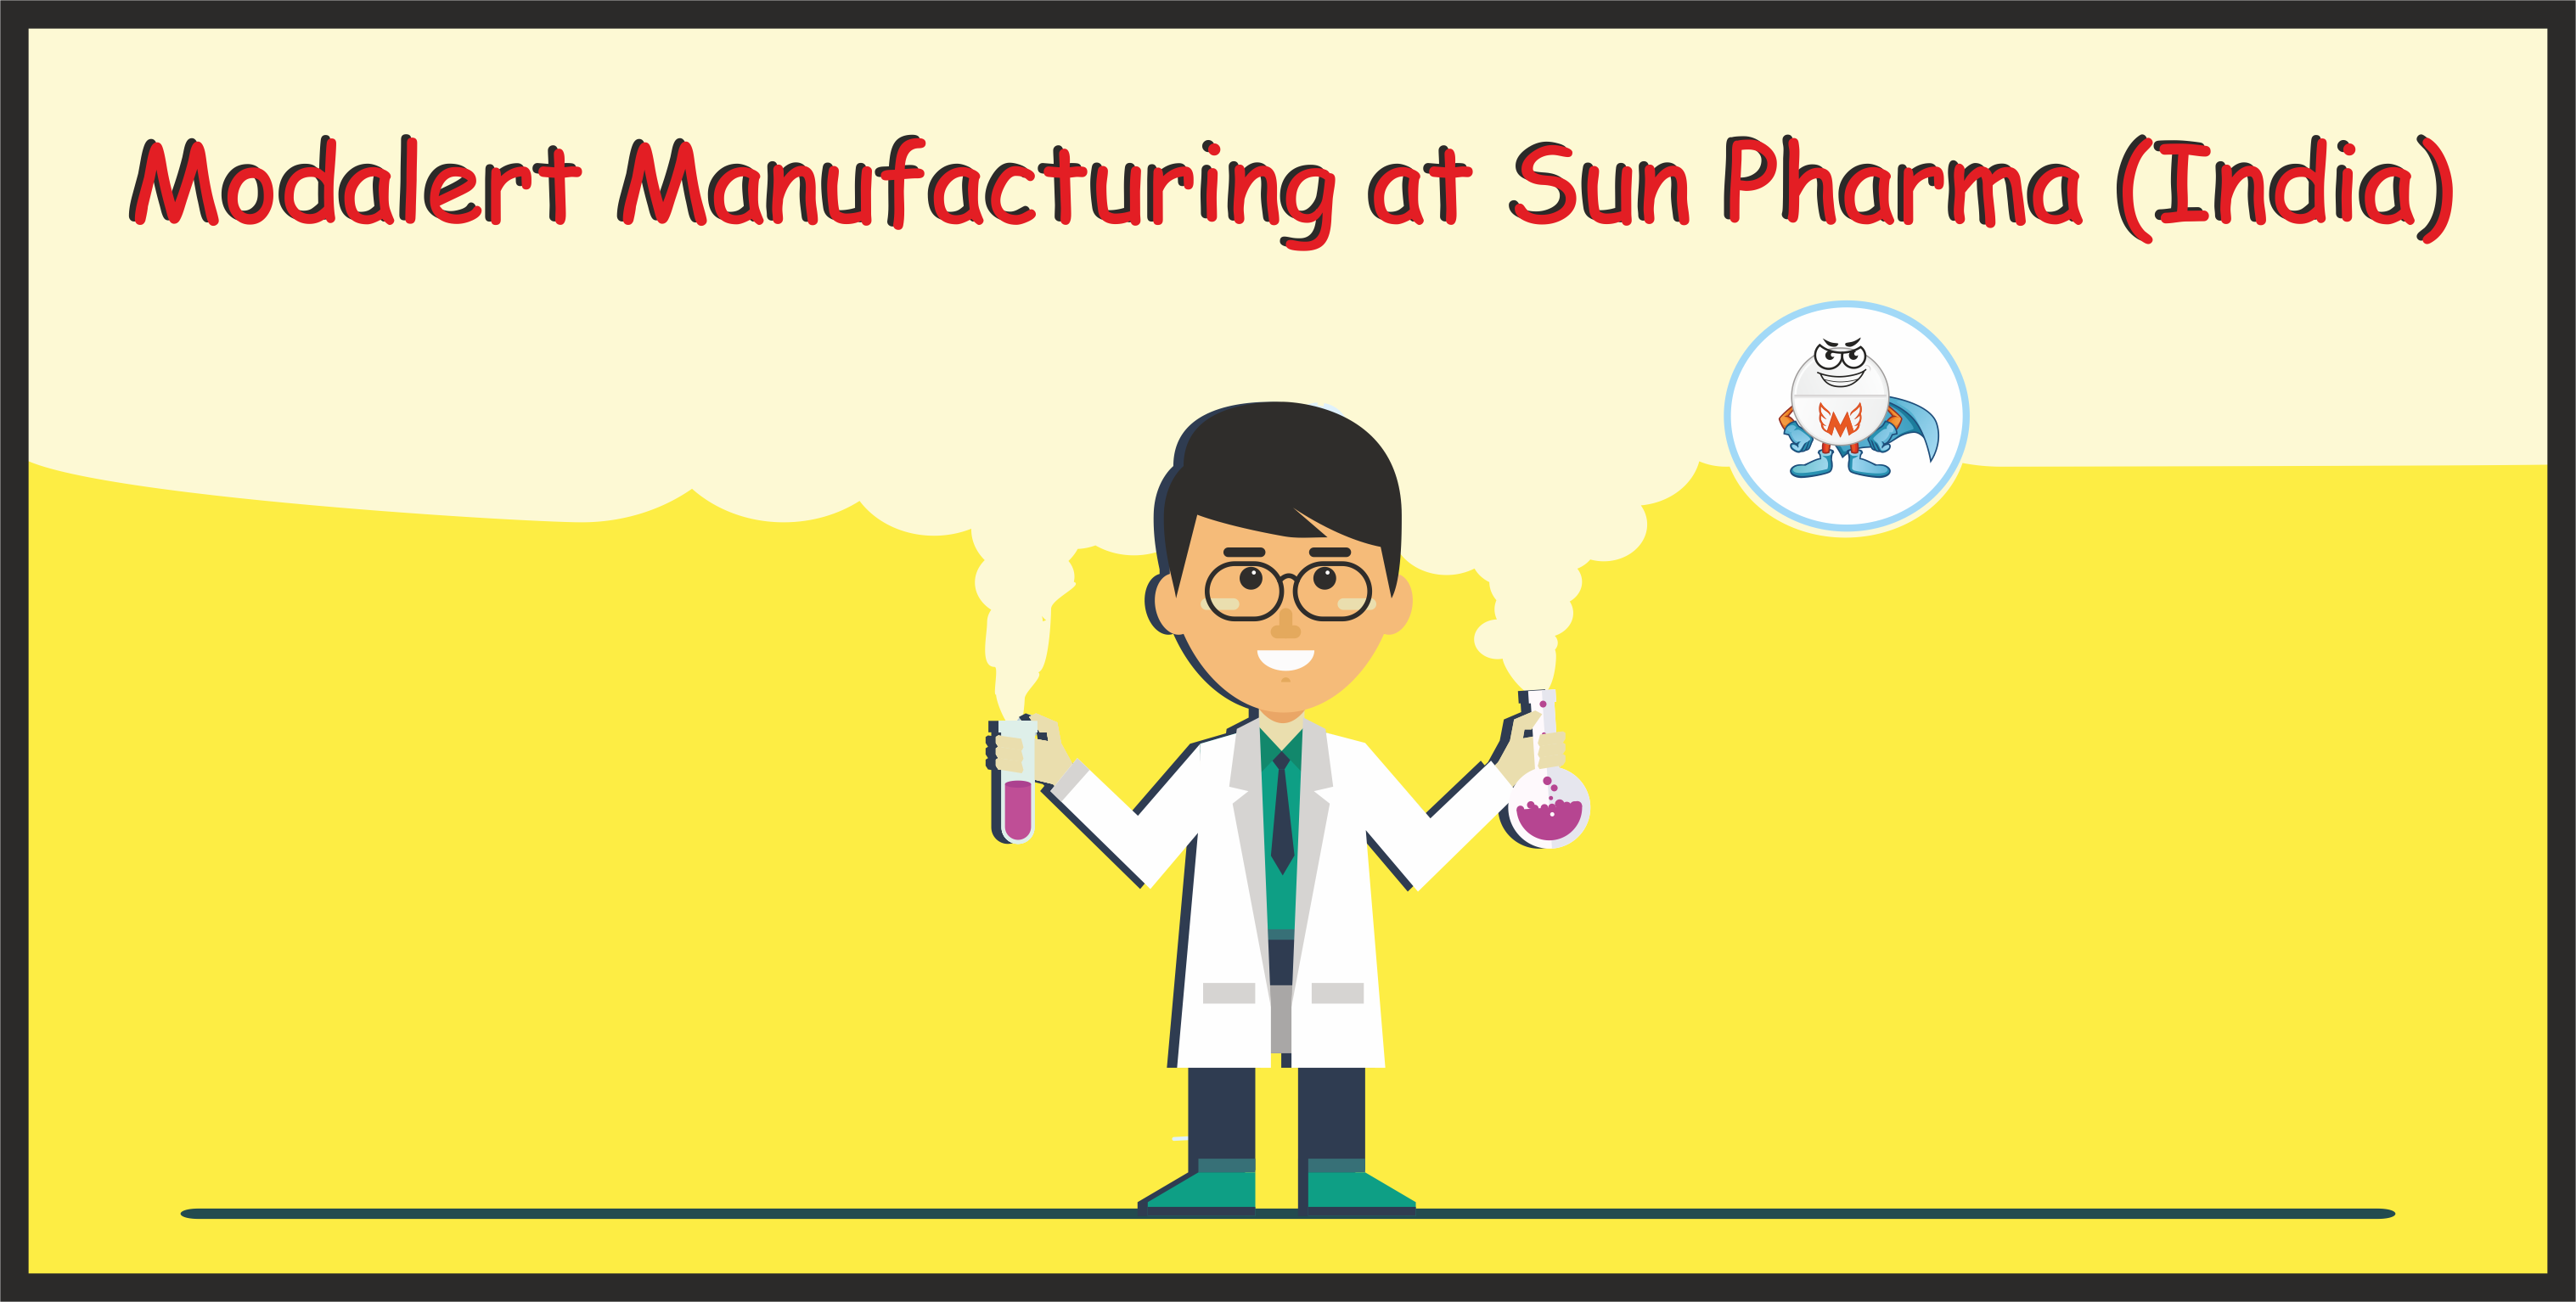 Modalert Manufacturing at Sun Pharma (India)